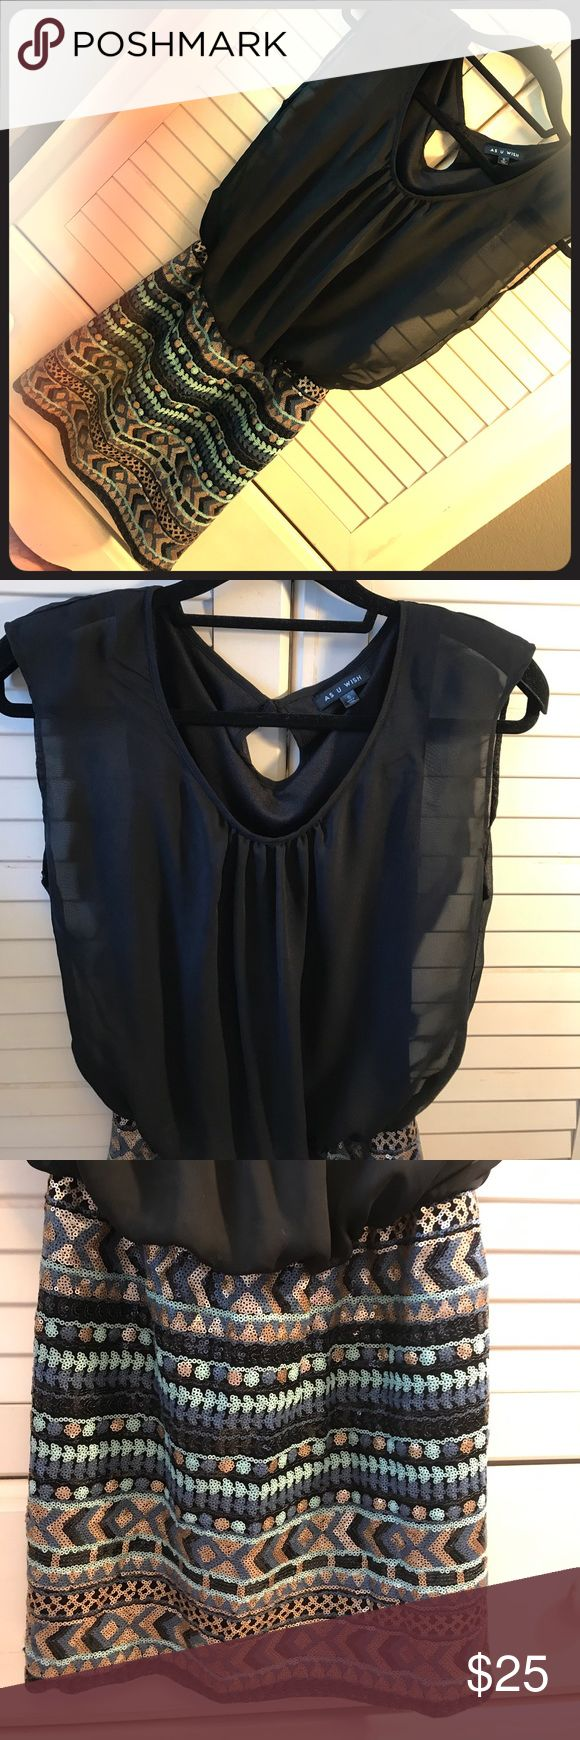 As U Wish Cleopatra Mini Black chiffon lined sleeveless top with single button closure in back. Beautiful sequined skirt giving it a Roman Era looking design, one of my favs! As U Wish Dresses Mini